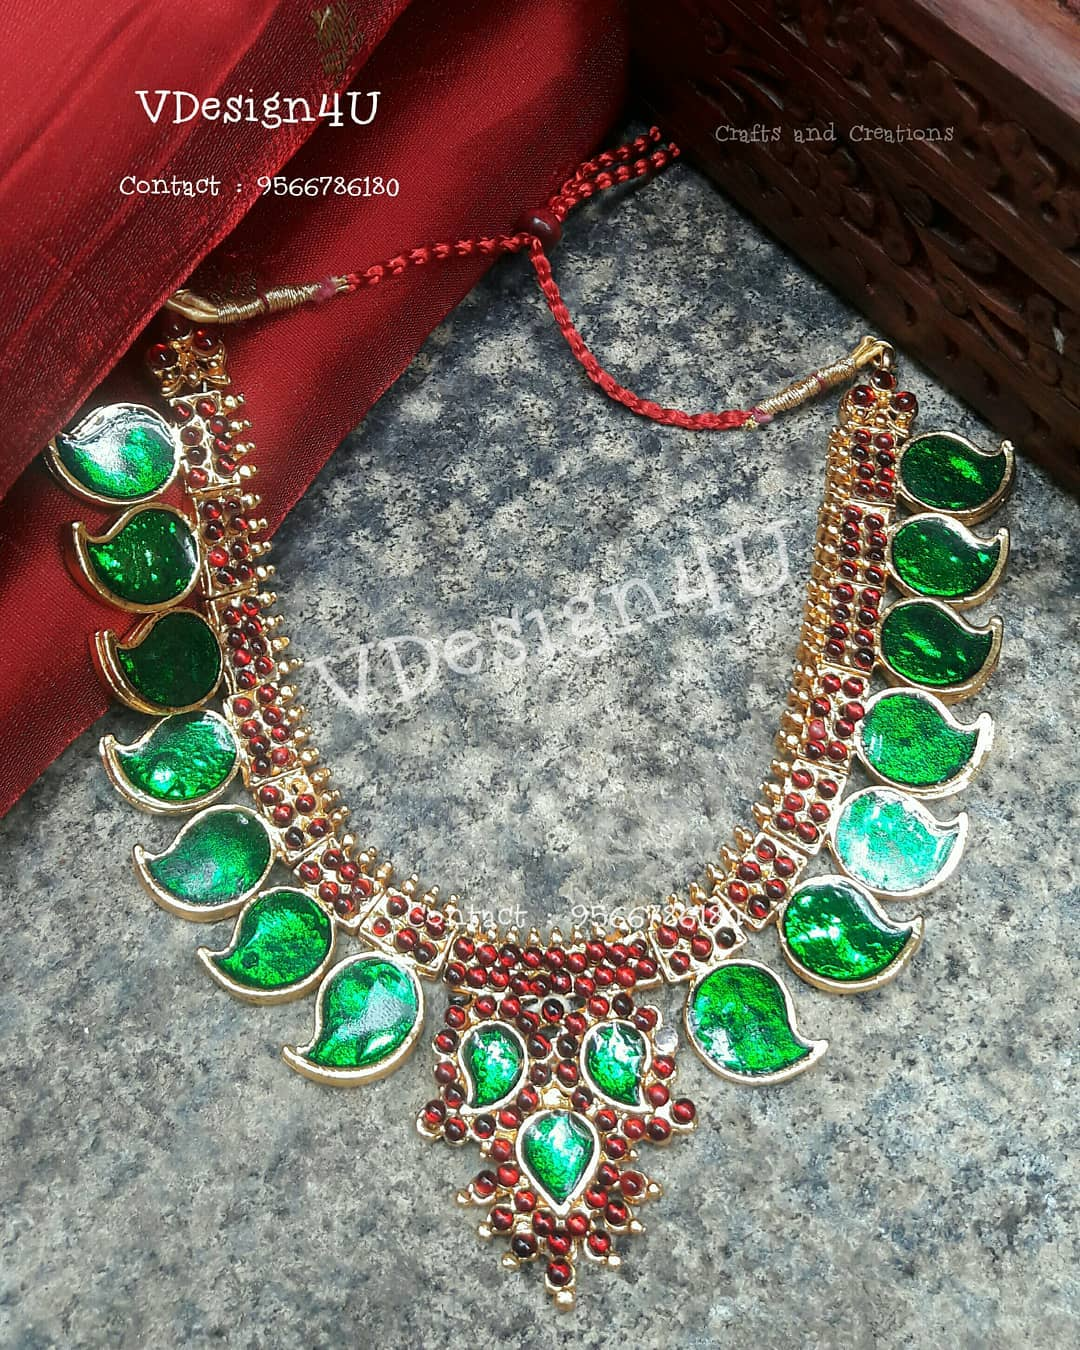 Traditional Handmade Necklace From Vdesign4U